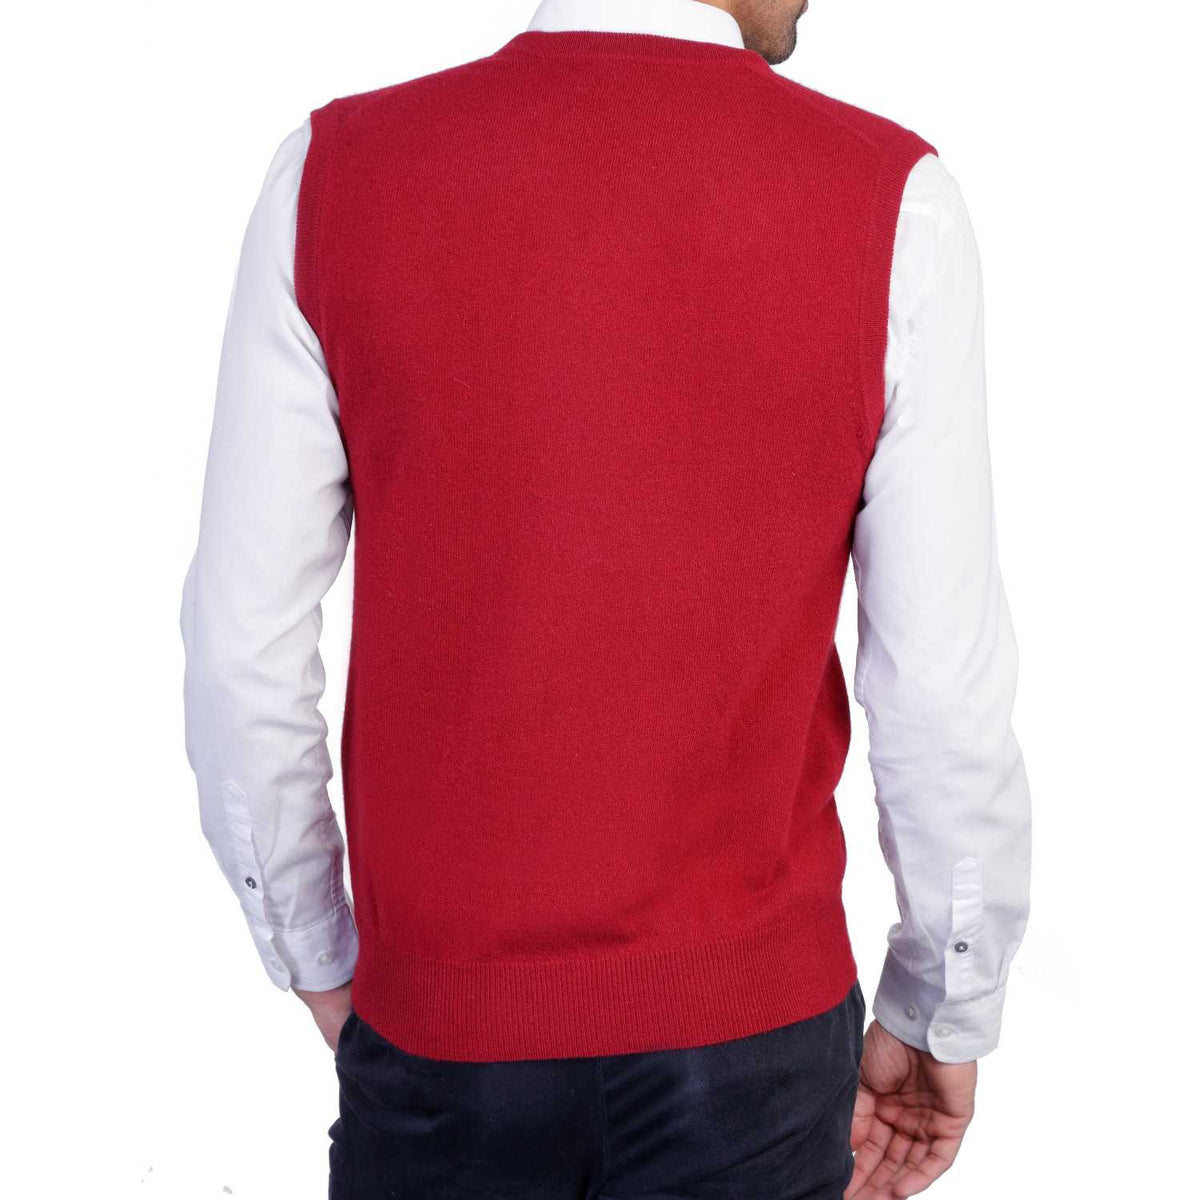 Mens Burgundy Wine Cashmere Sleeveless Vest Sweater | Back | Shop at The Cashmere Choice | London